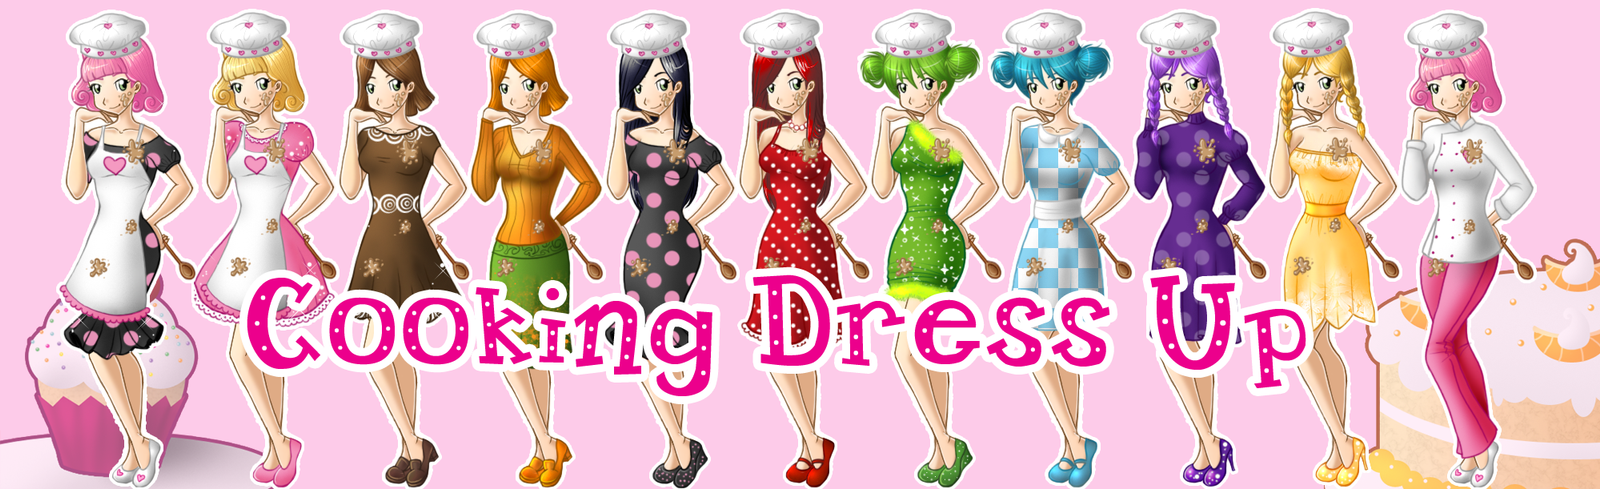 Cooking Dress Up Game By Annortha On DeviantArt